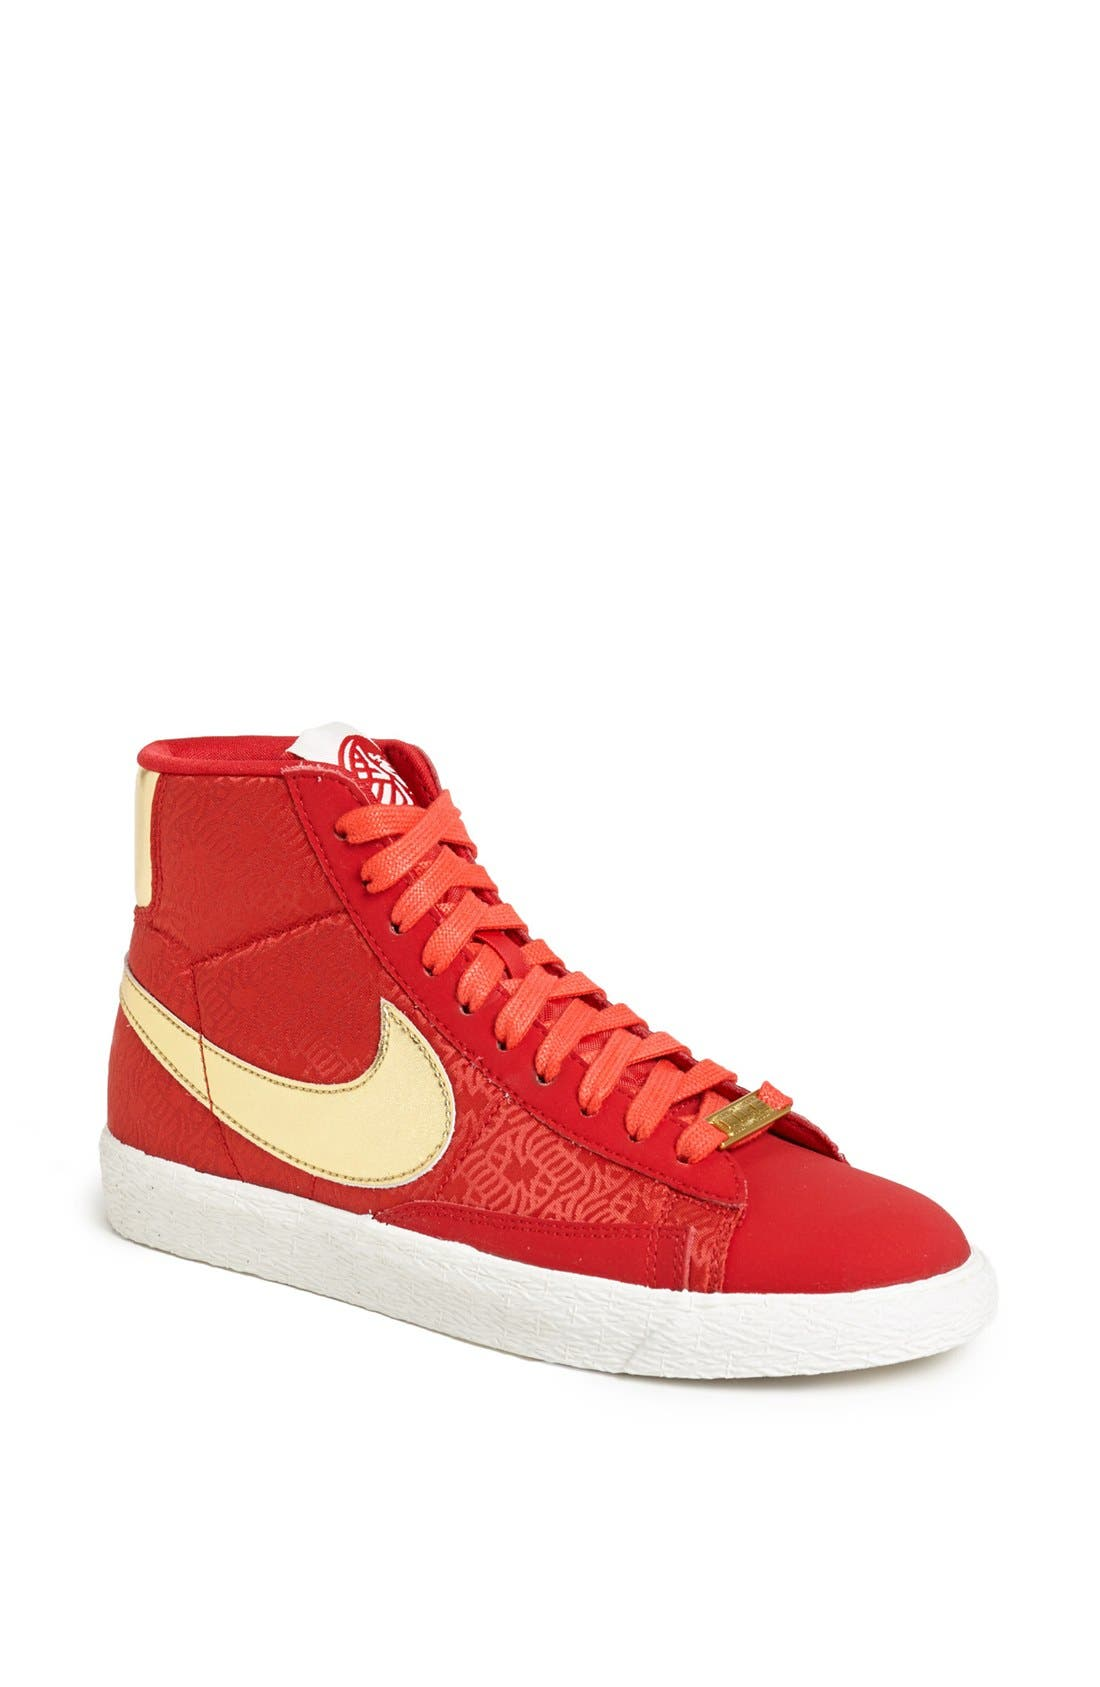 Alternate Image 1 Selected - Nike 'Blazer Mid - Year of the Horse' Sneaker (Women)